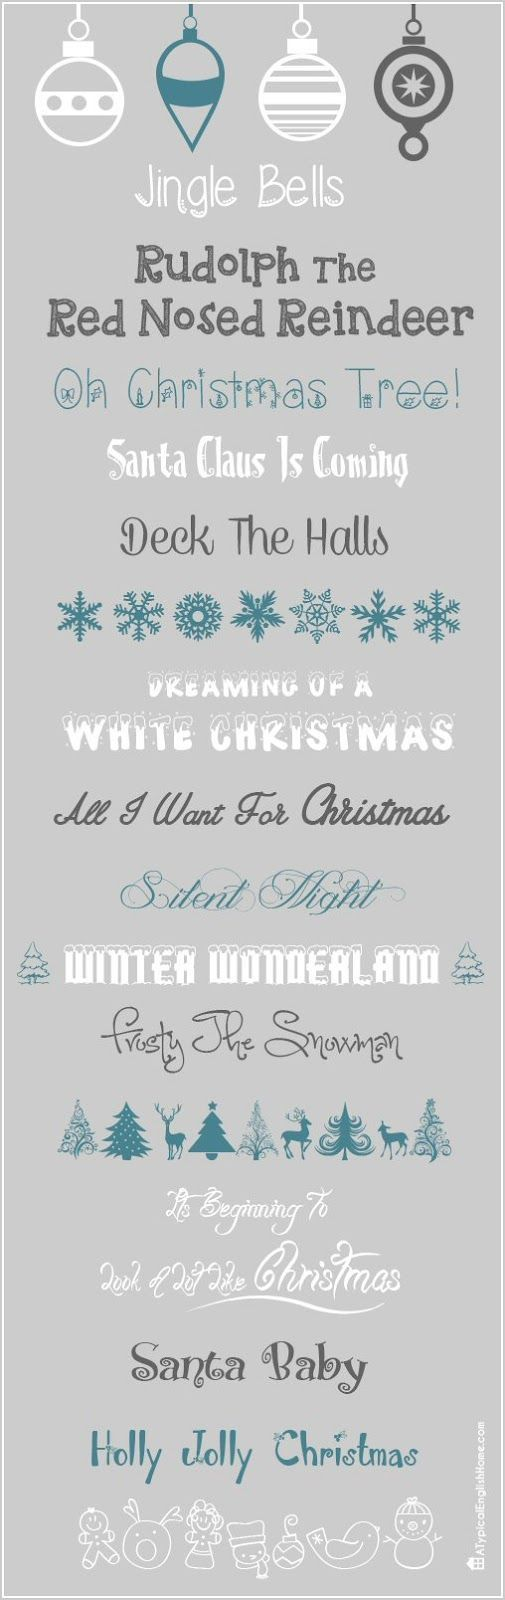 Free Christmas Fonts 2013 - A Typical English Home